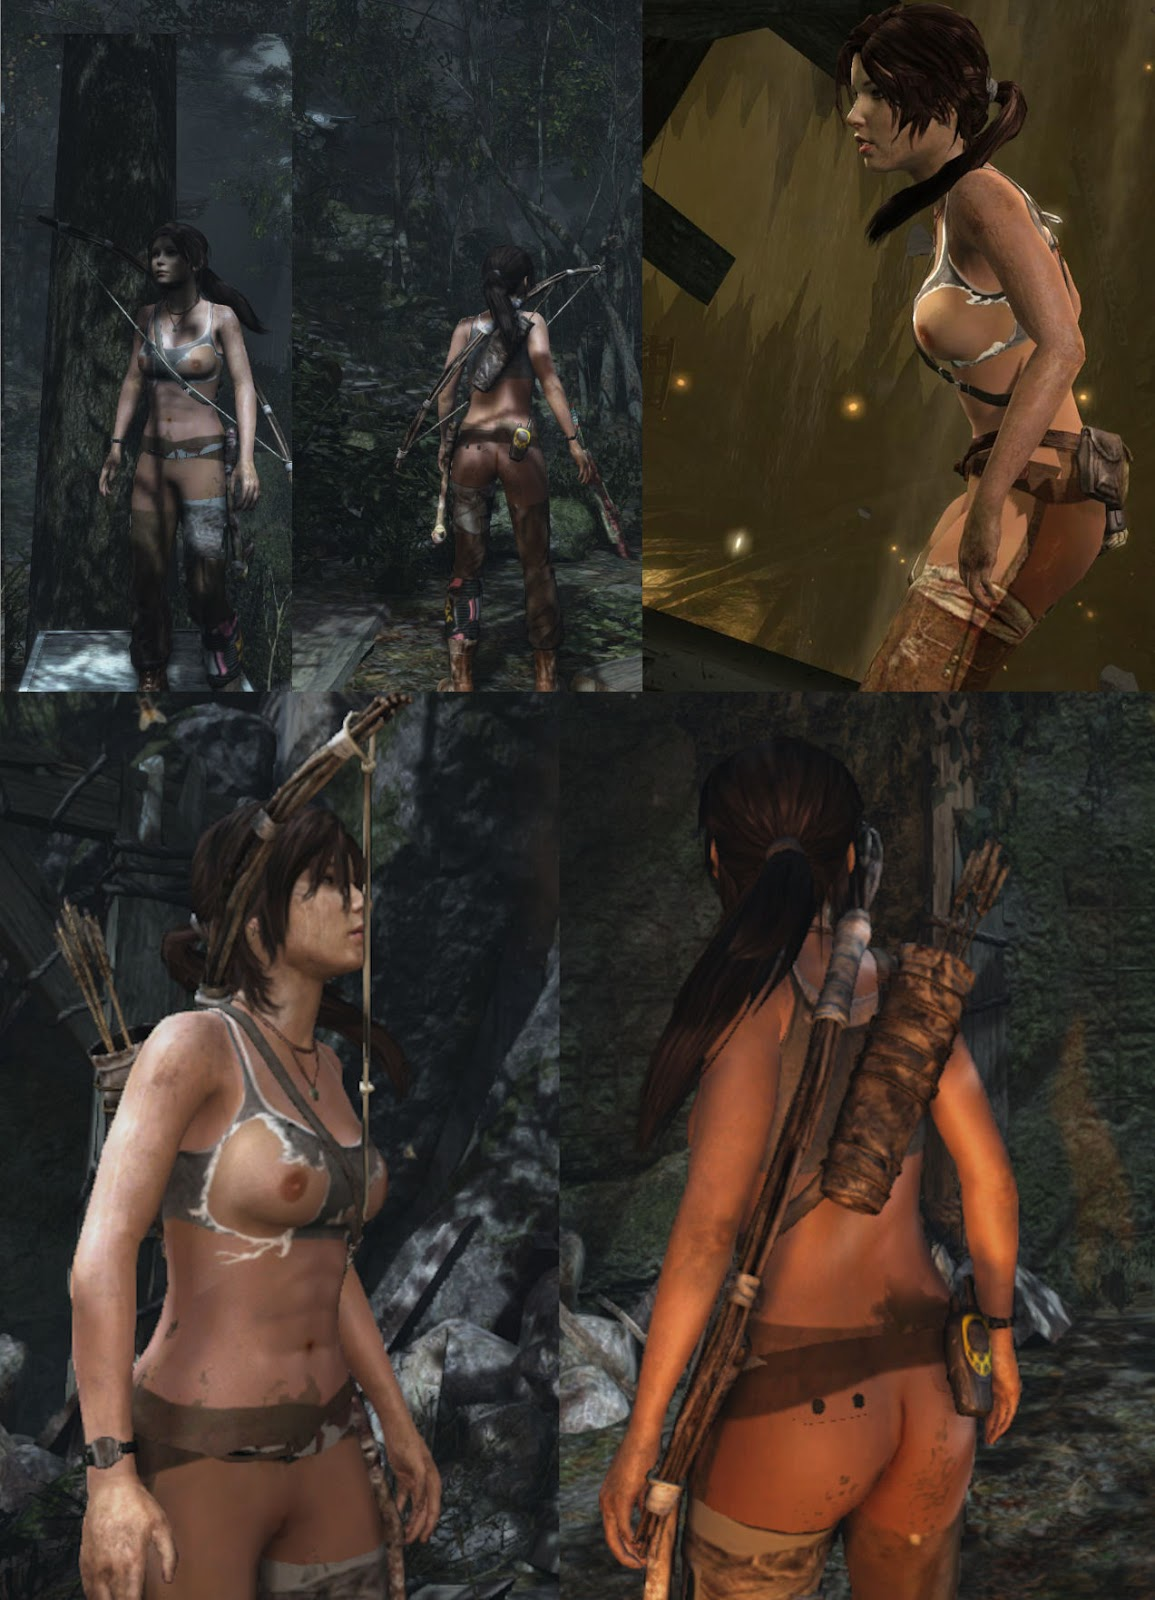 Tomb raider - legend nude patch erotica movie